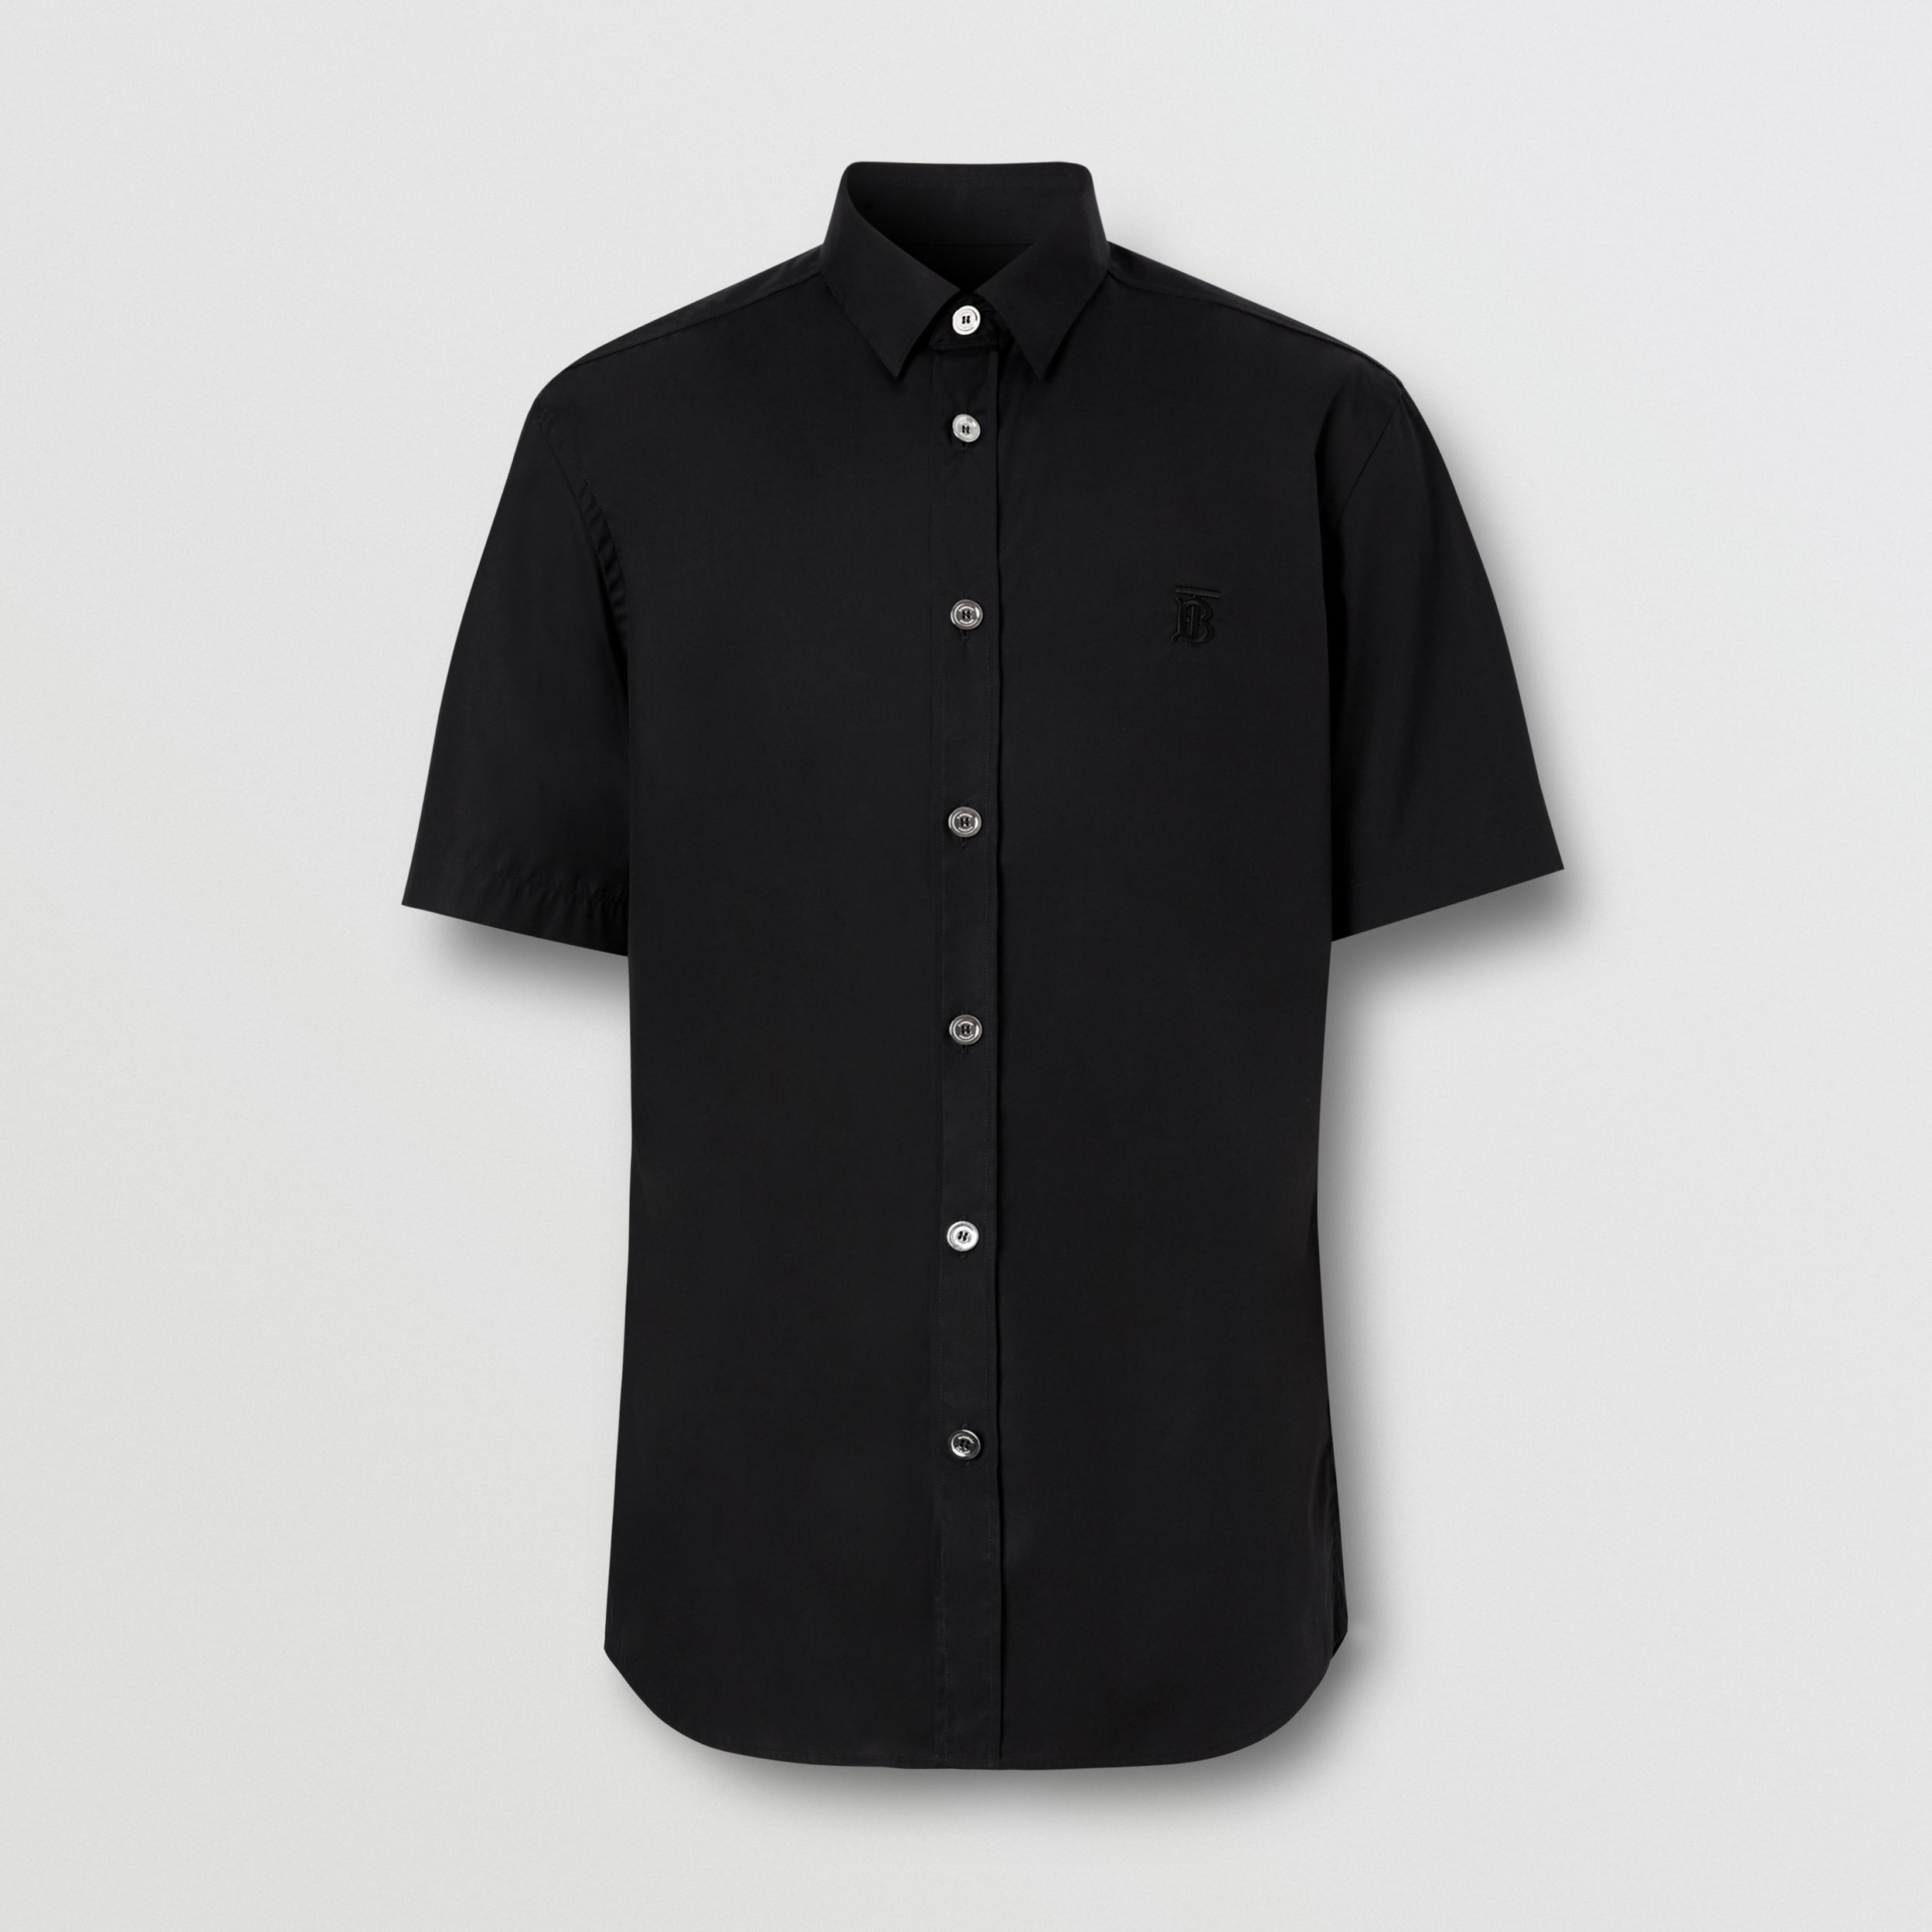 Short-sleeve Monogram Motif Stretch Cotton Shirt in Black - Men | Burberry Hong Kong S.A.R. - 4